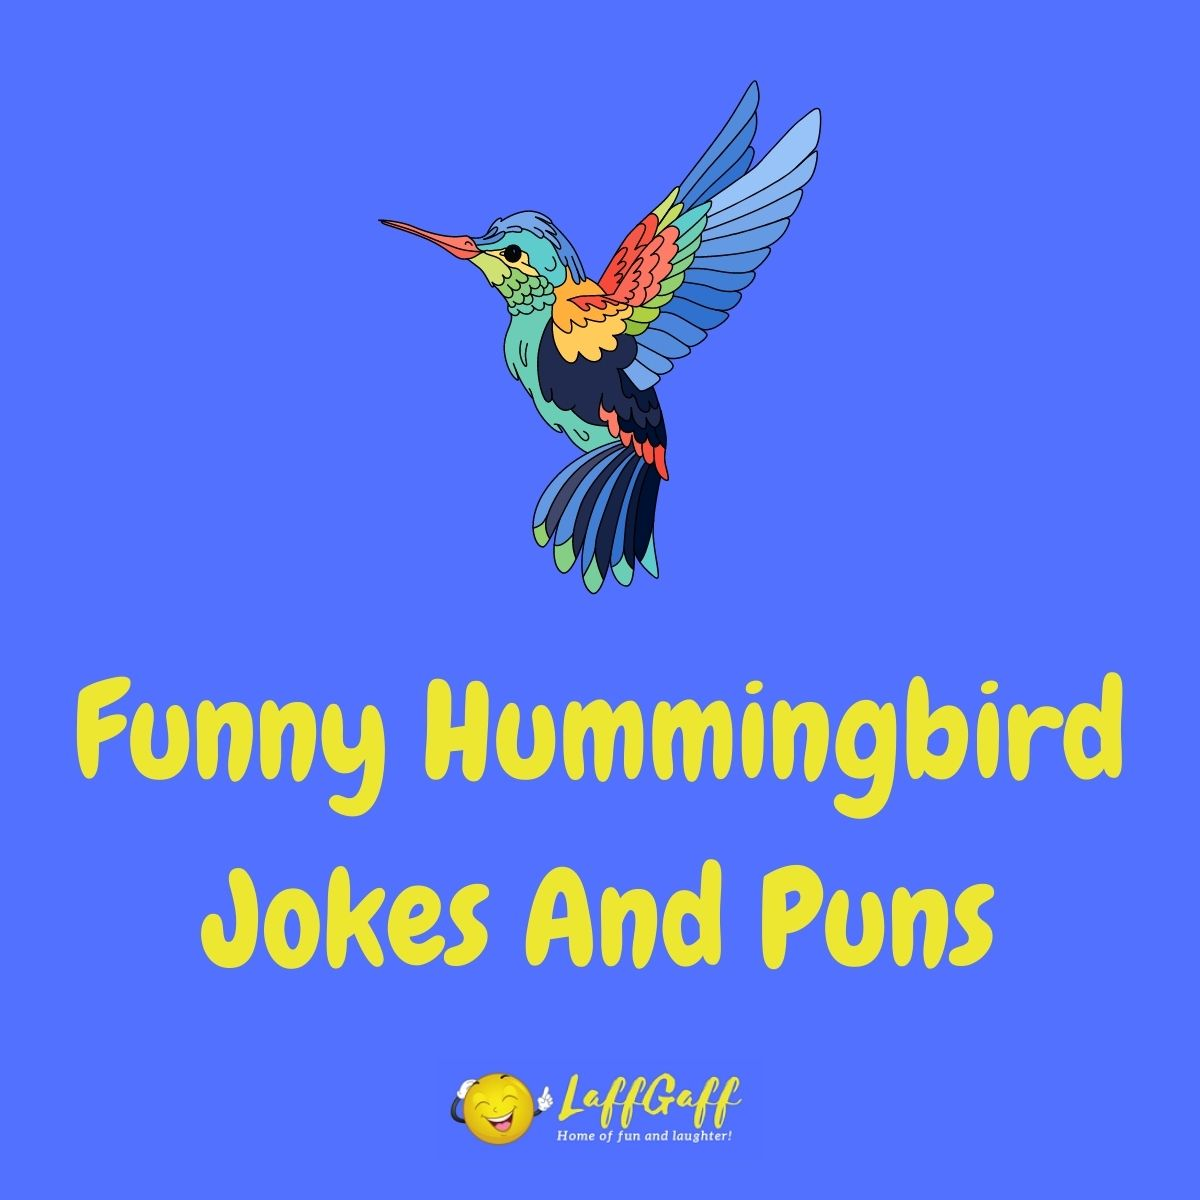 Featured image for a page of funny hummingbird jokes and puns.